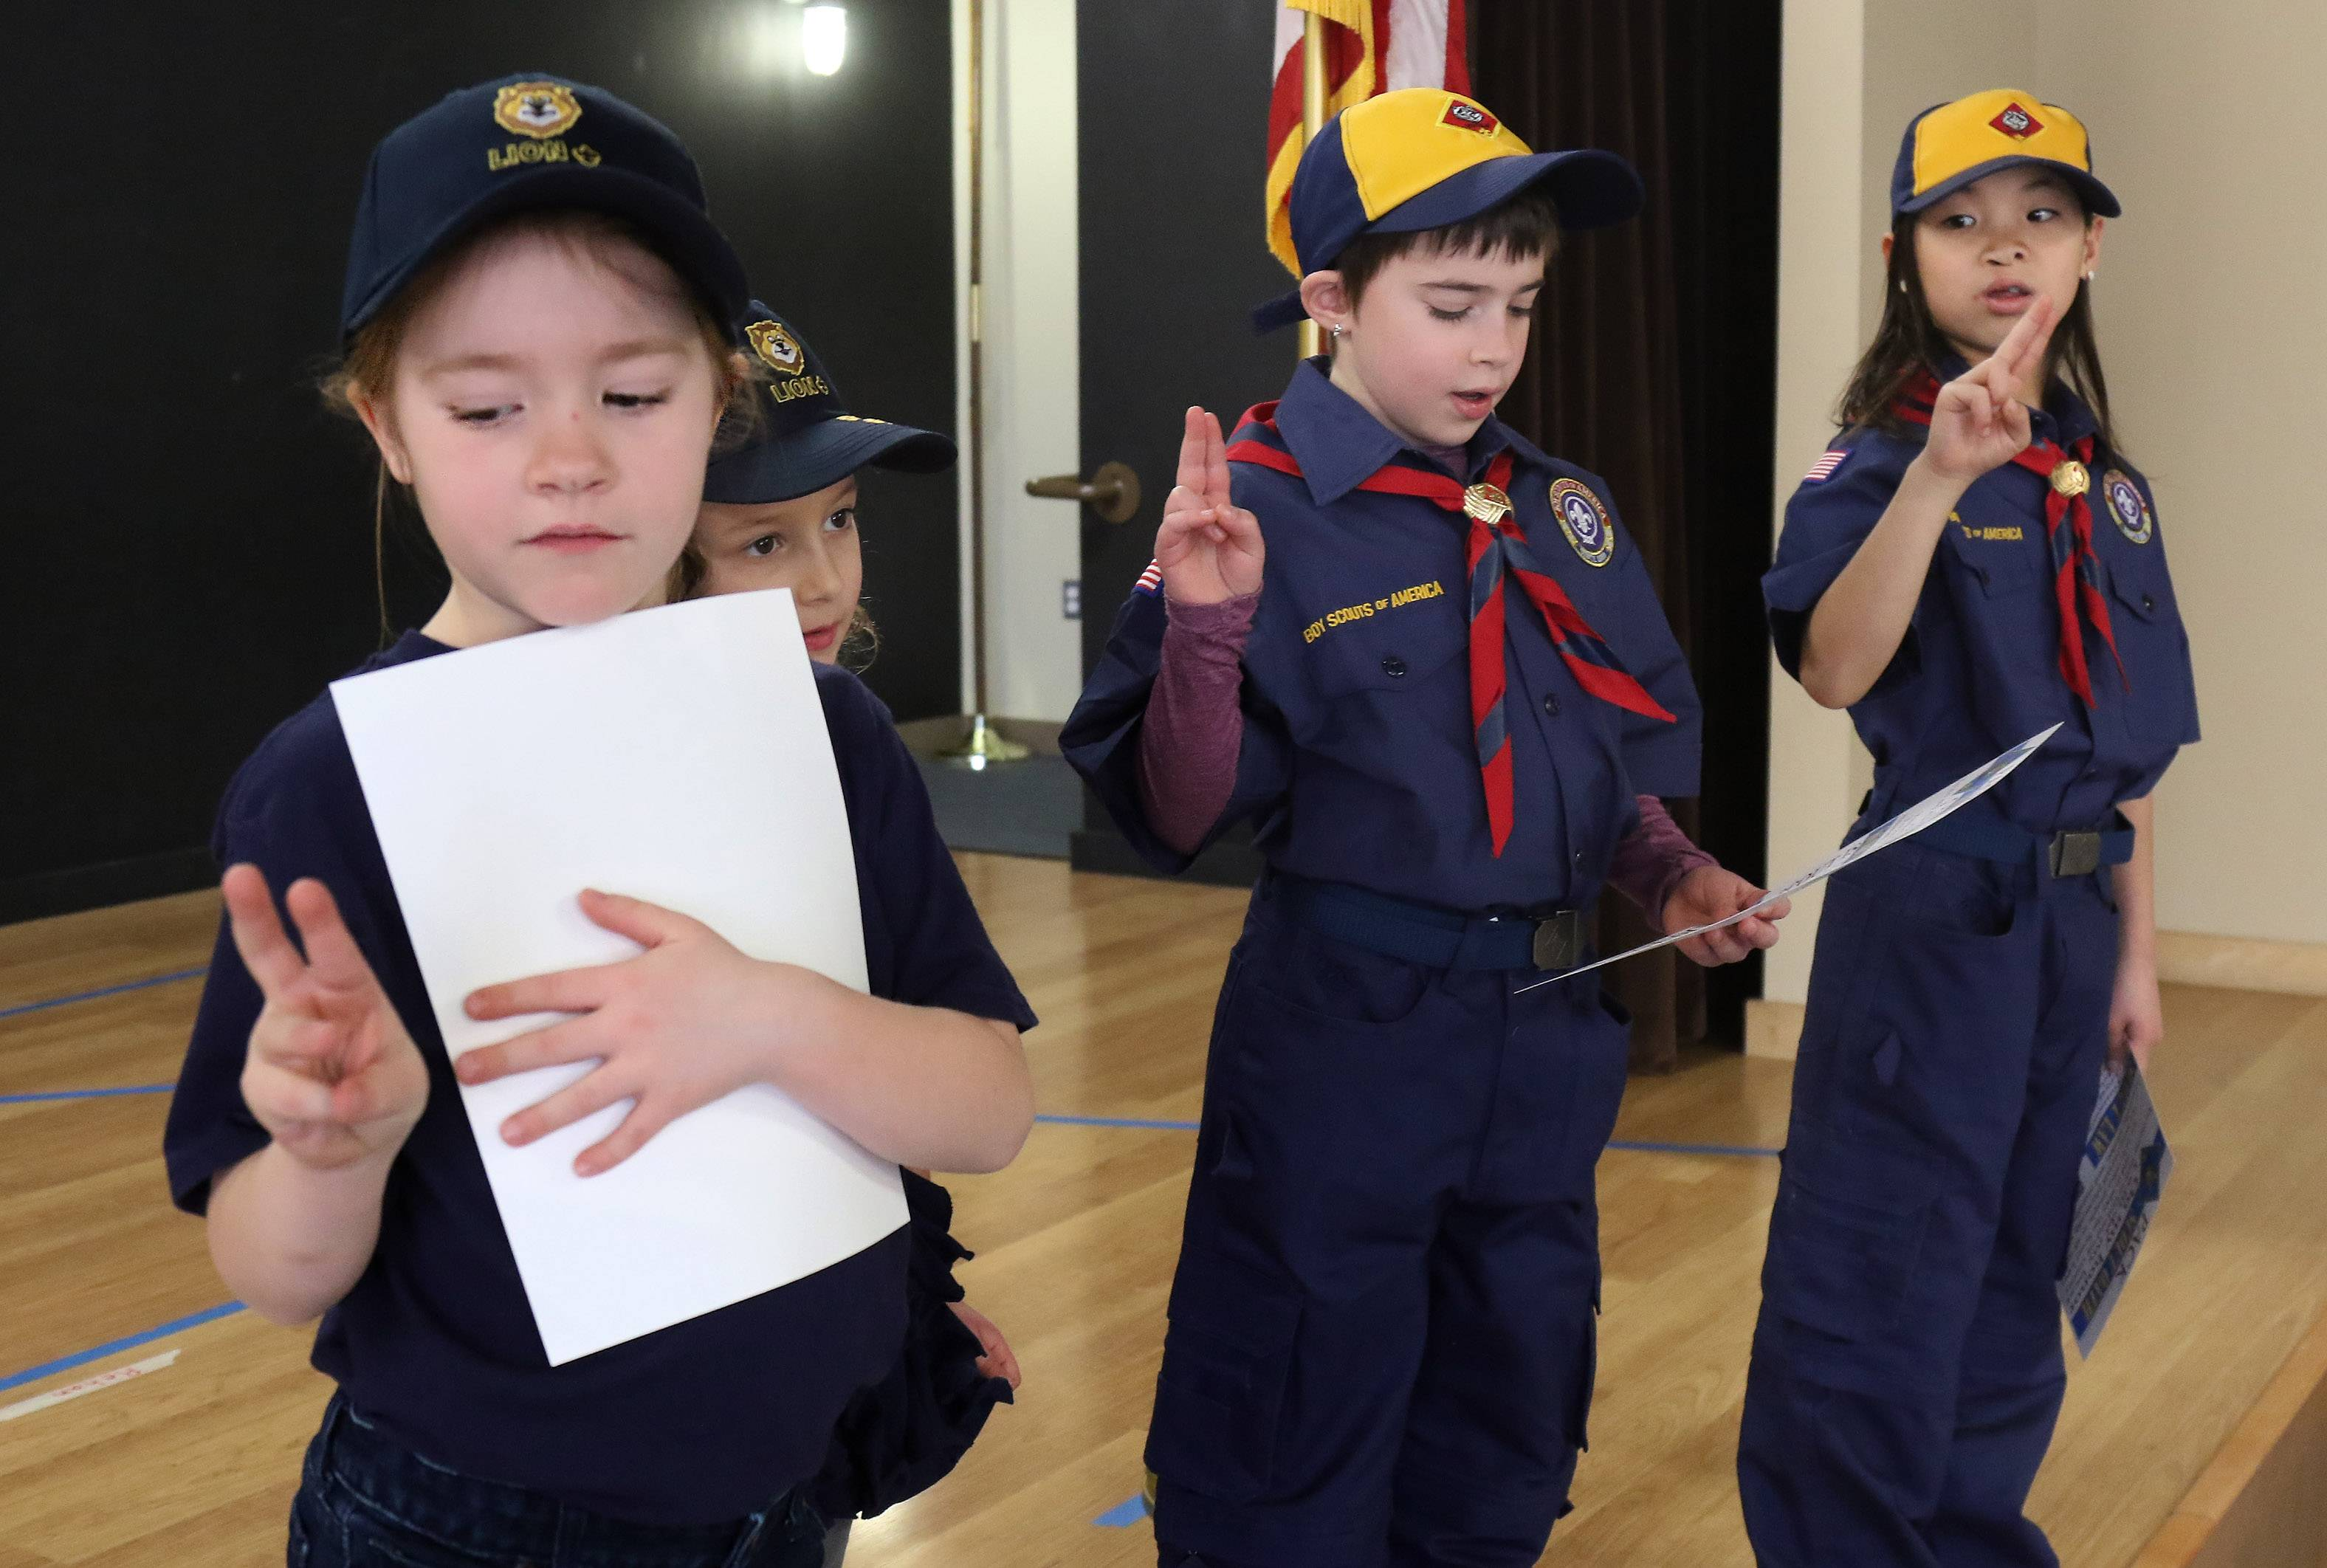 The newest girls in Cub Scouts, Addison Carver, 6, from left, Willow Youkhana, 6, and Kate and Lucy Vraniak, both 8, practice forming their fingers for the salutes they learn for the Scout Oath during the first meeting of Den 9 of Cub Scouts Pack 229 at the Barrington Park District Recreation and Fitness Center in Langendorf Park.